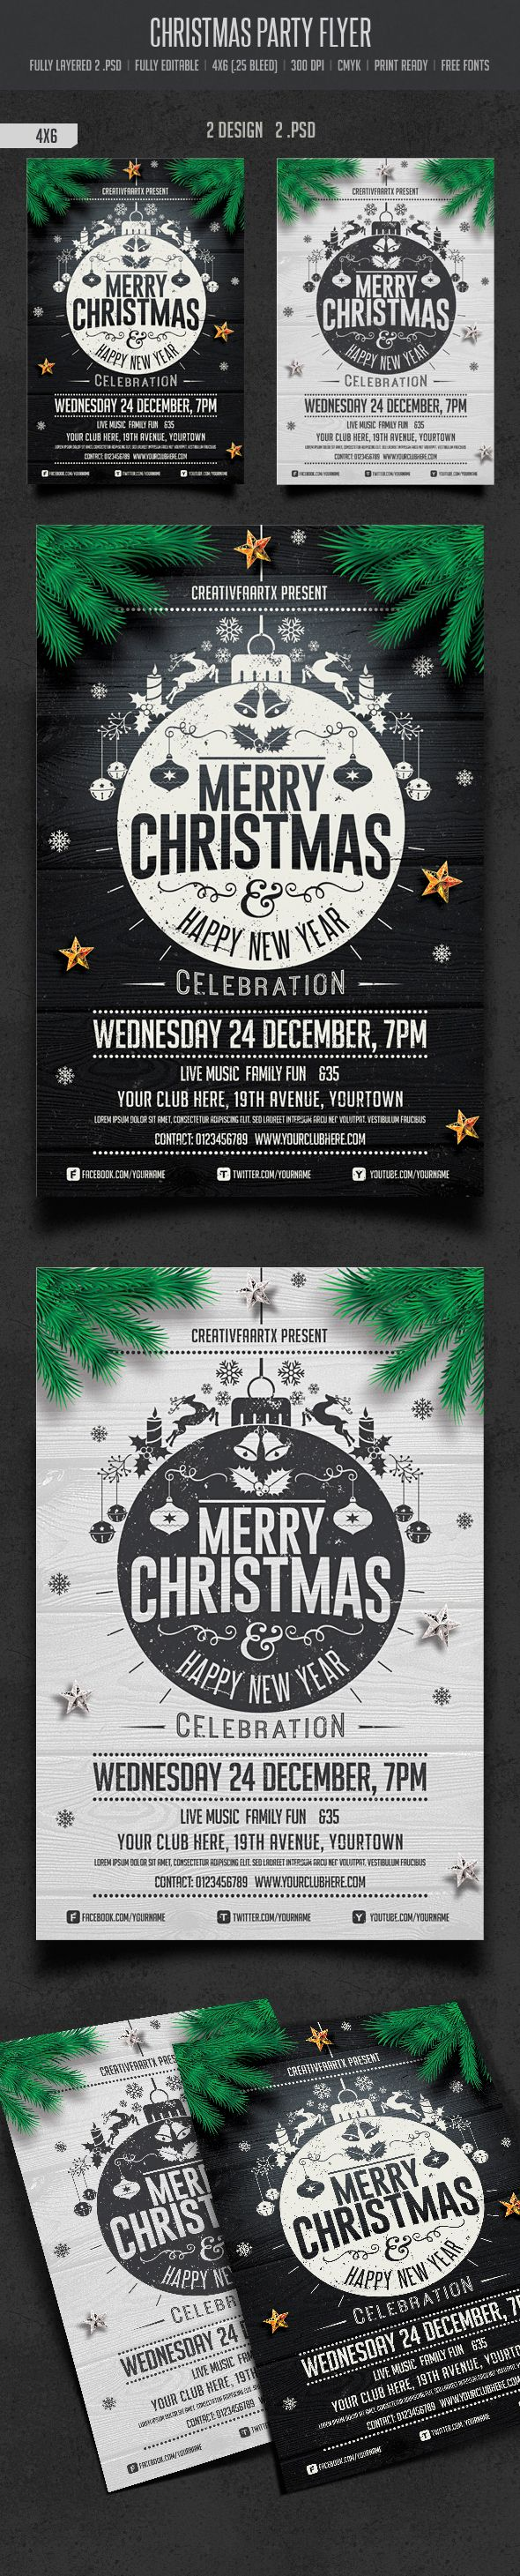 christmas party flyer on behance l a y o u t christmas party flyer on behance